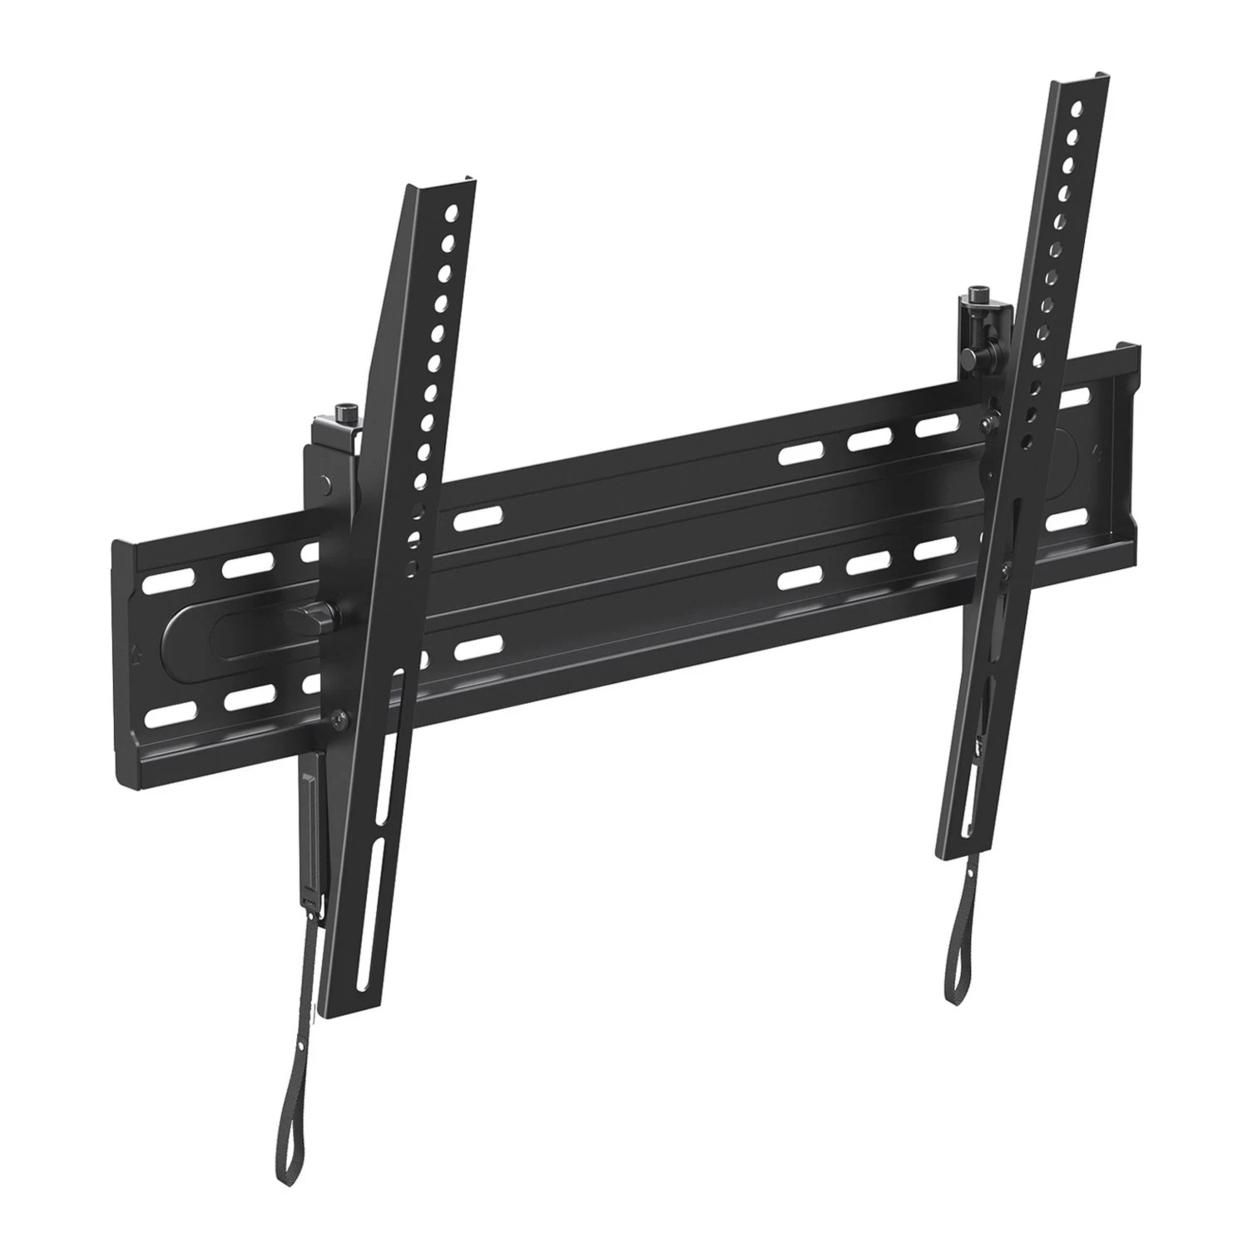 Member's Mark Tilting TV Wall Mount with Leveling Design for 32-90 inch TVs